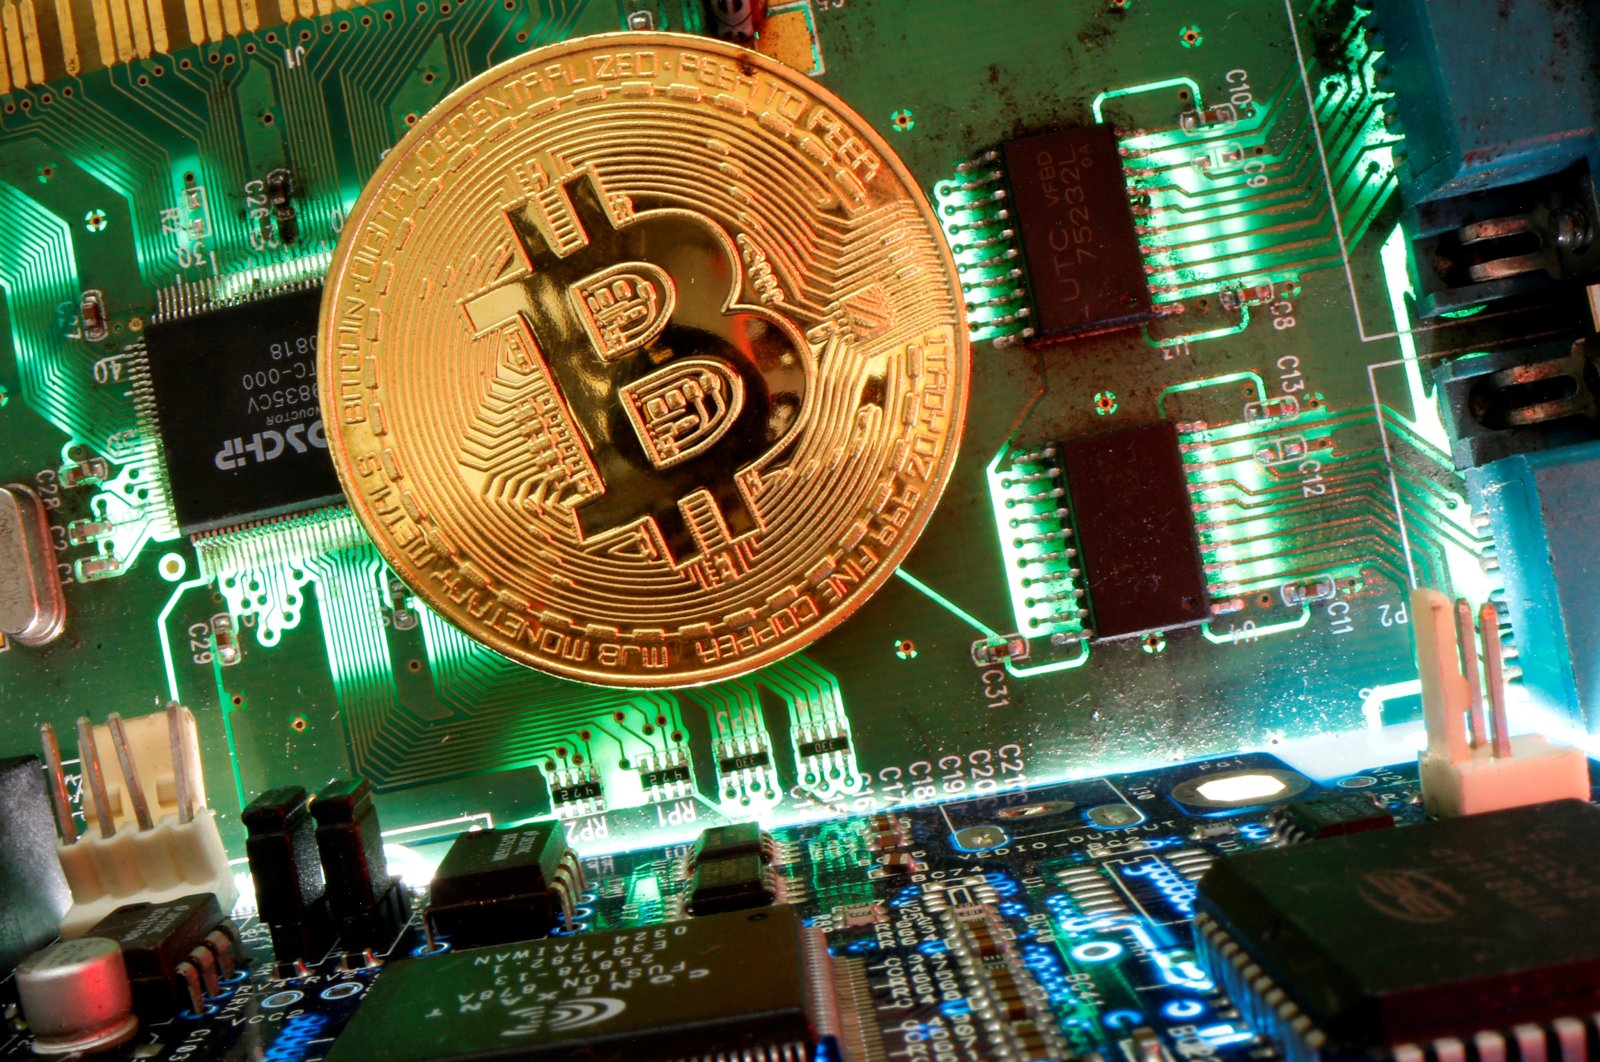 A representation of the virtual currency Bitcoin is seen on a motherboard in this illustration, April 24, 2020 (Reuters)